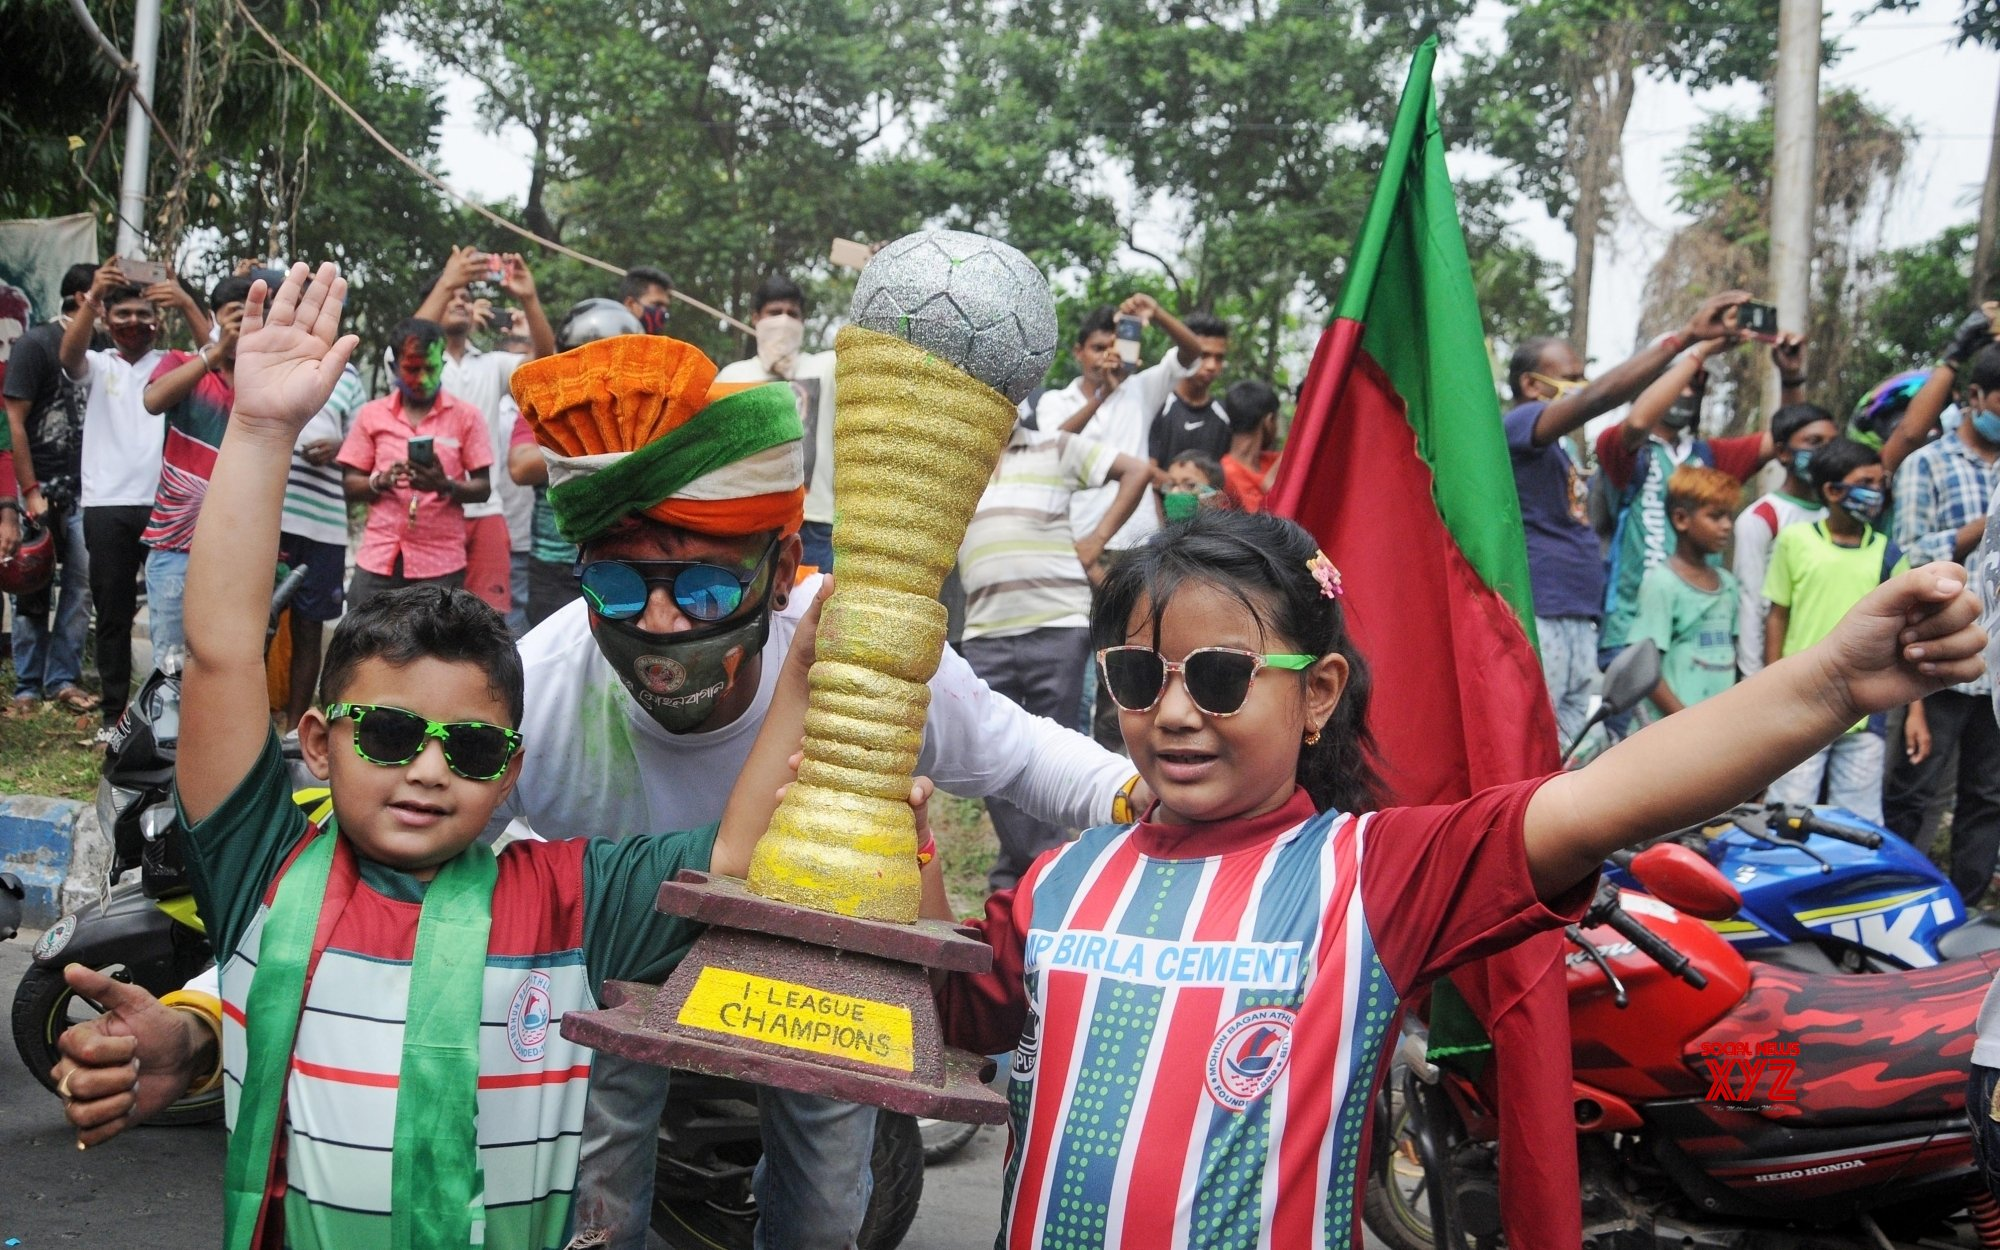 Kolkata: Mohun Bagan Football Club supporters hold a victory rally from Hotel Hyatt to Mohun Bagan Ground (Batch 2) #Gallery